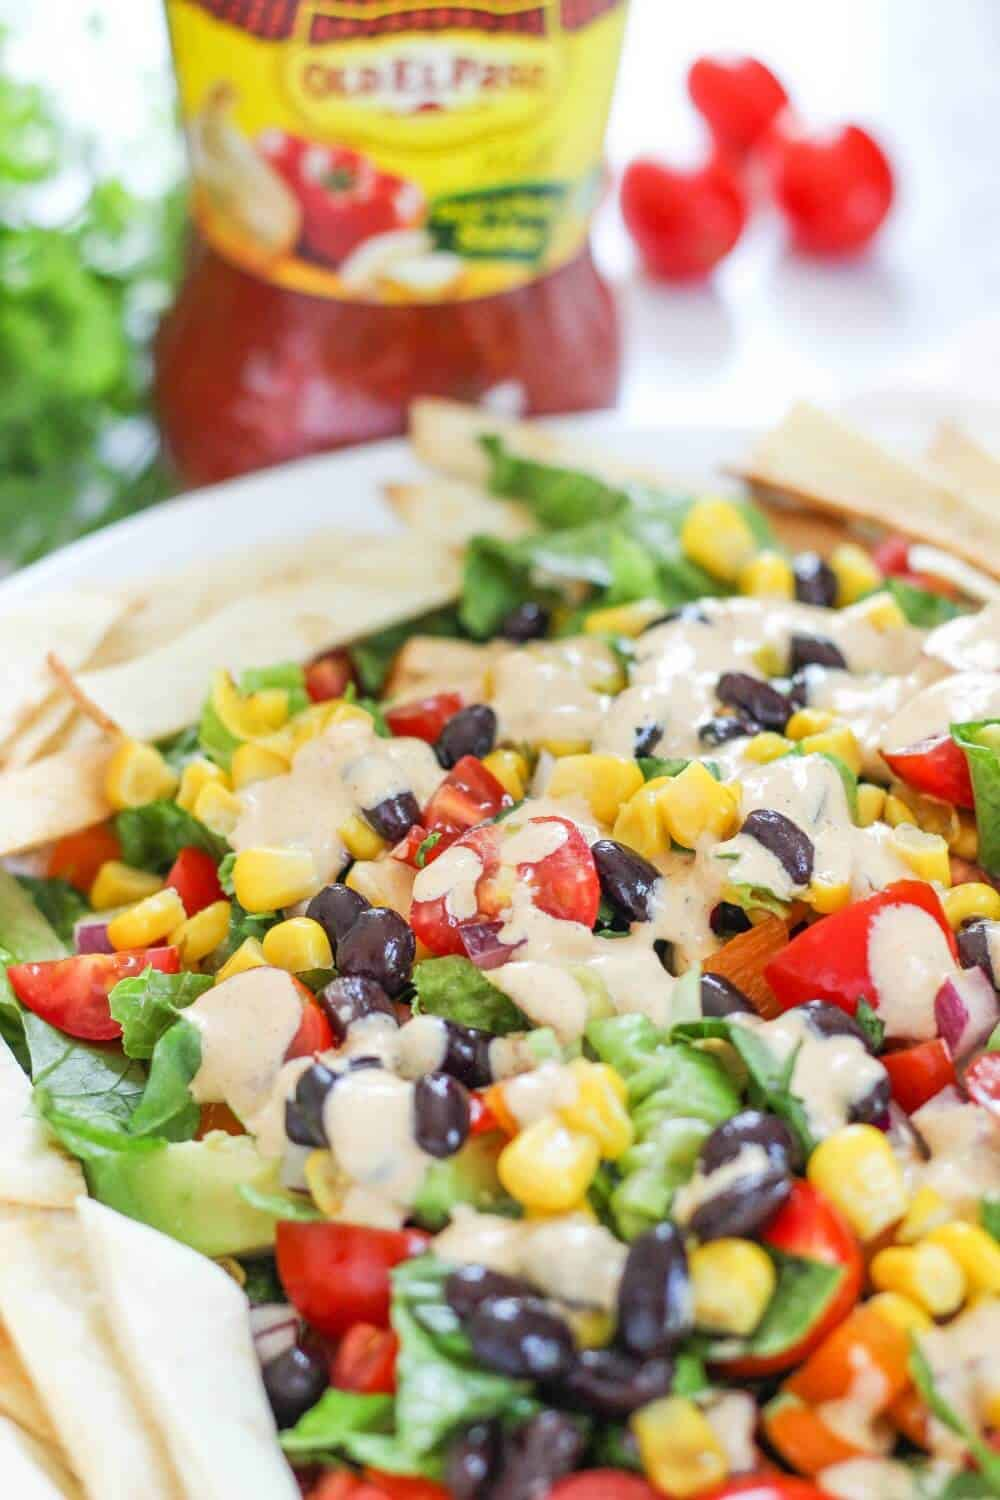 Mexican Chopped Salad with Chipotle Dressing.. . perfectly balanced with just the right about of spice for this delicious meal!